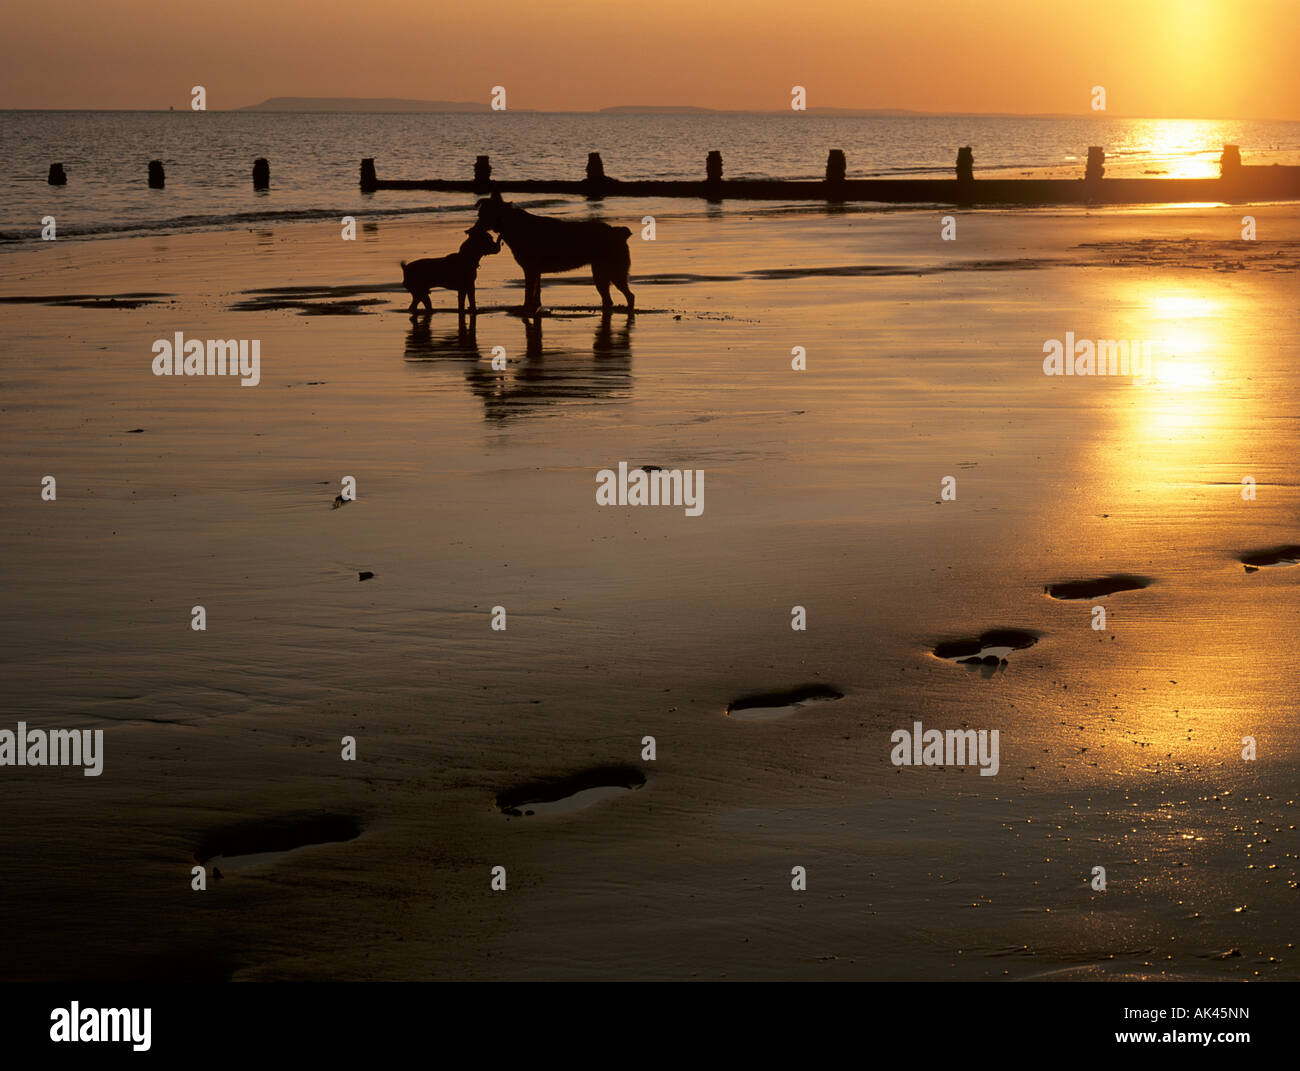 TWO DOGS on a BEACH at SUNSET silhouetted against a low sun reflecting off wet sand with footprints in foreground. - Stock Image